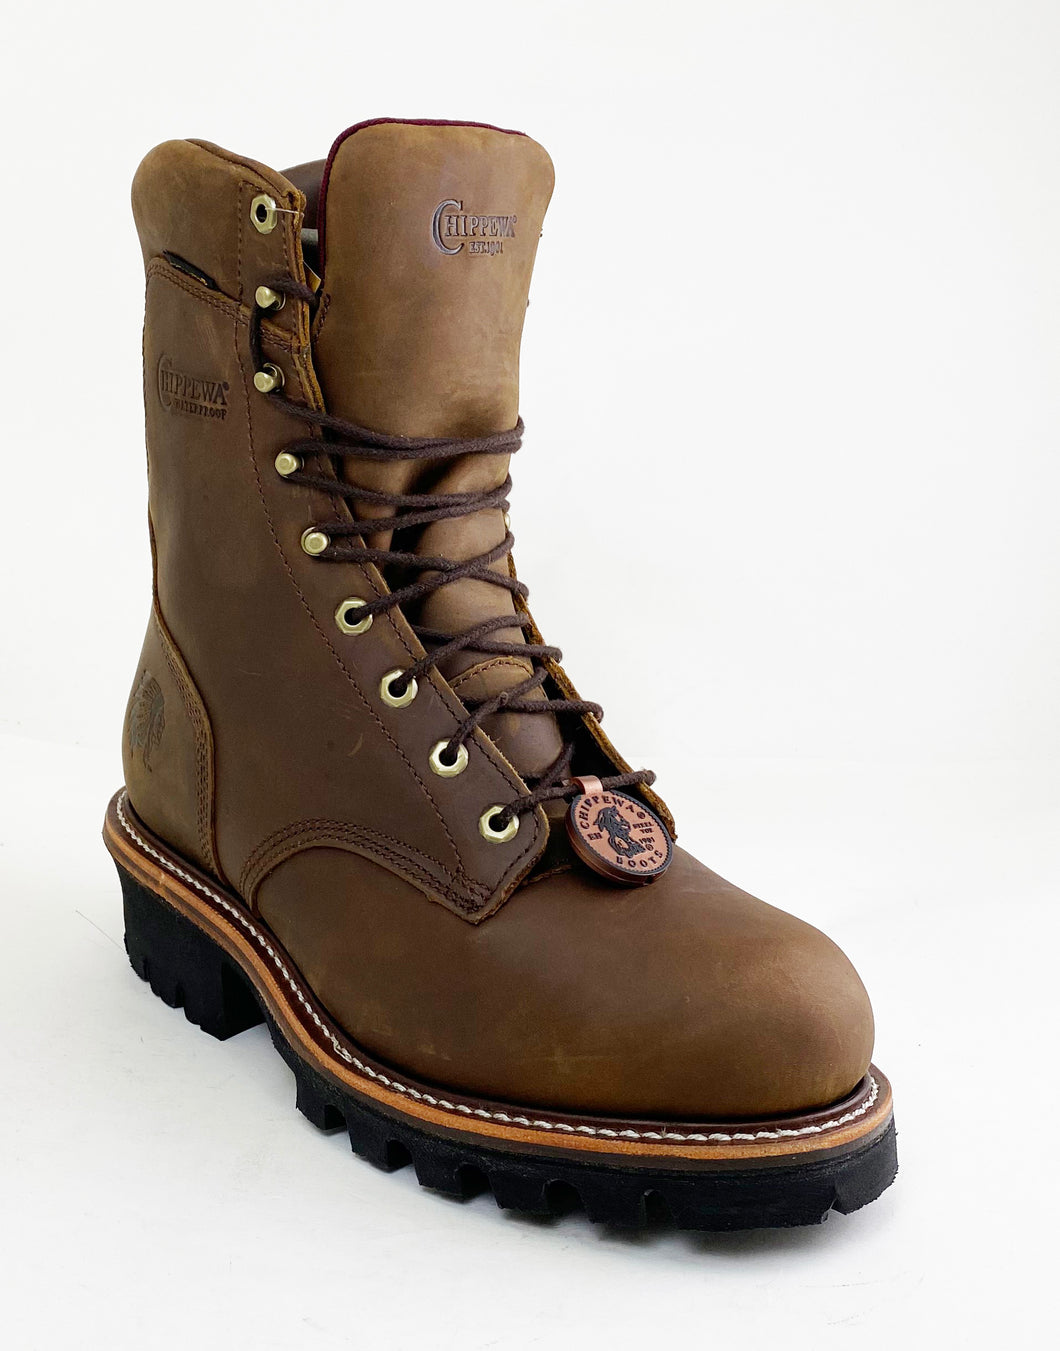 Chippewa 59405 Brown Waterproof 400 Grams Insulated Steel Toe Logger Work Boot